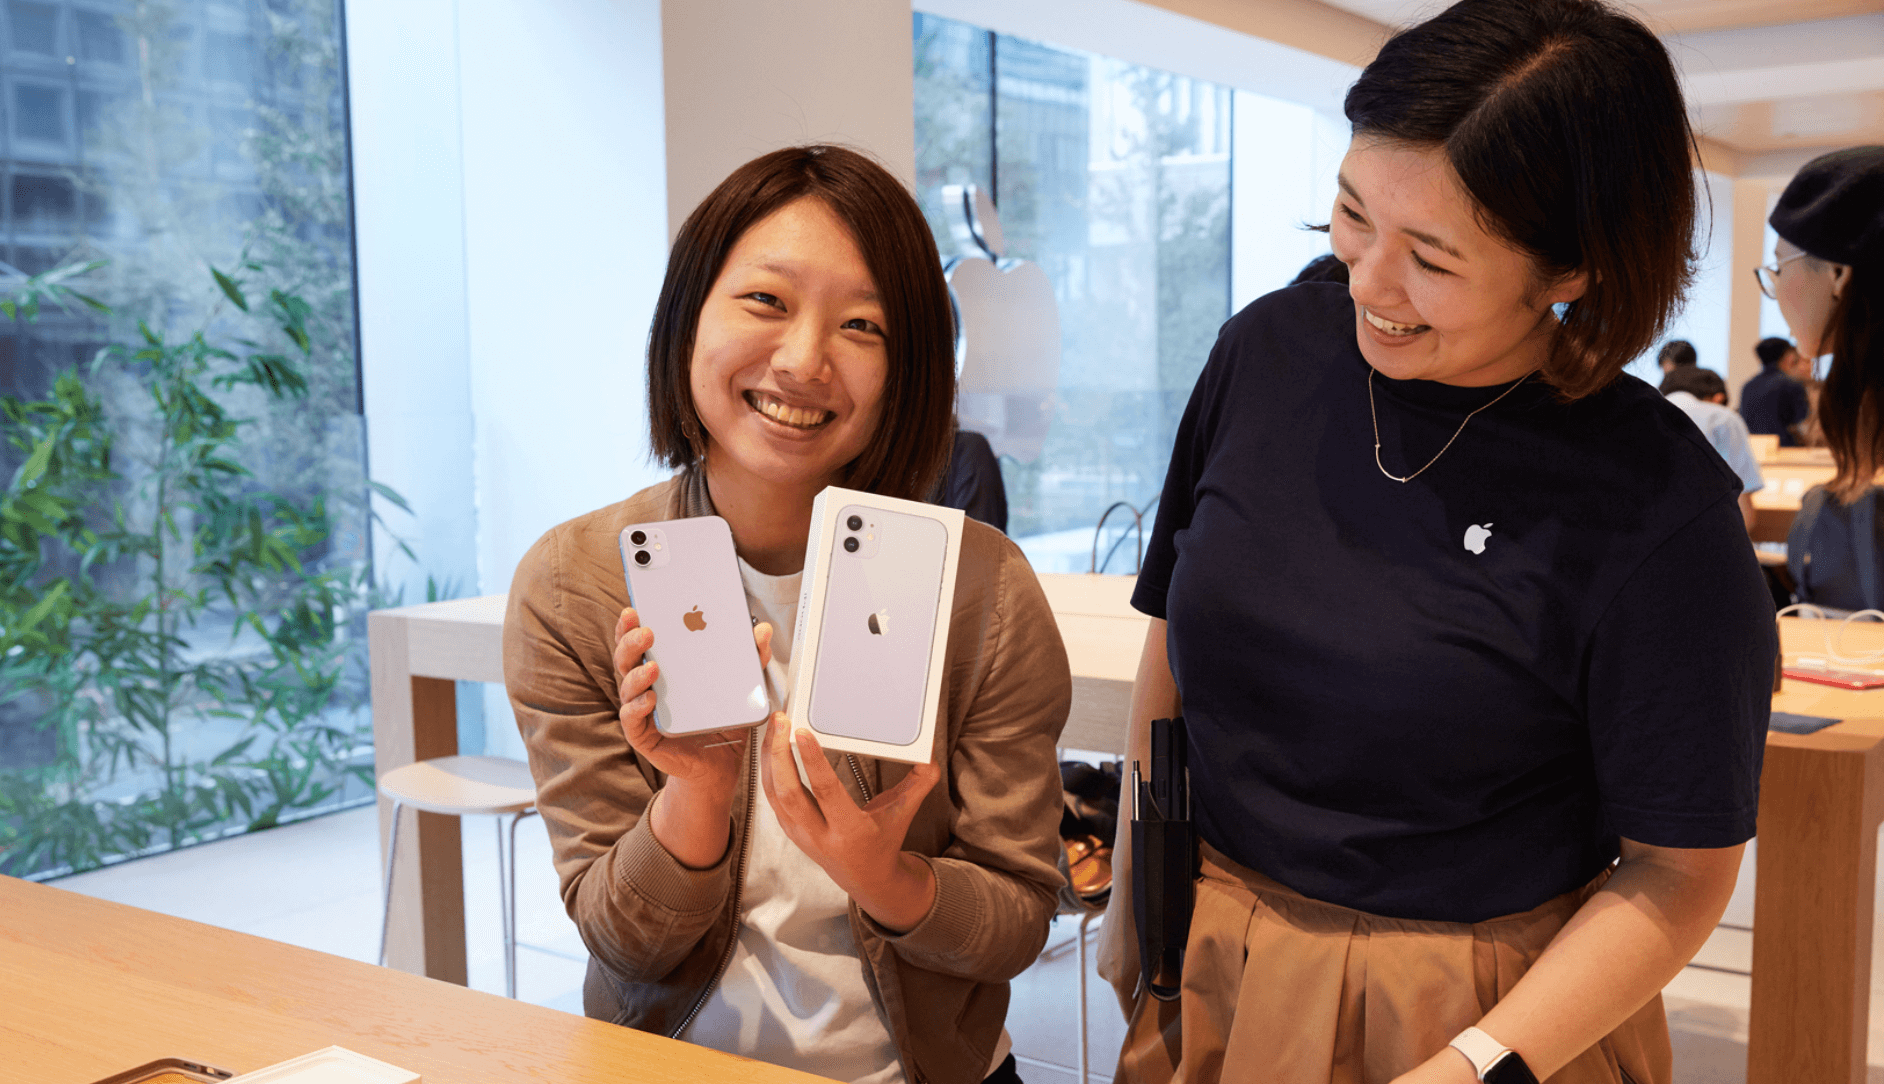 The first pictures have arrived iPhone 11, 11 Pro, Apple Watch Series 5 sales